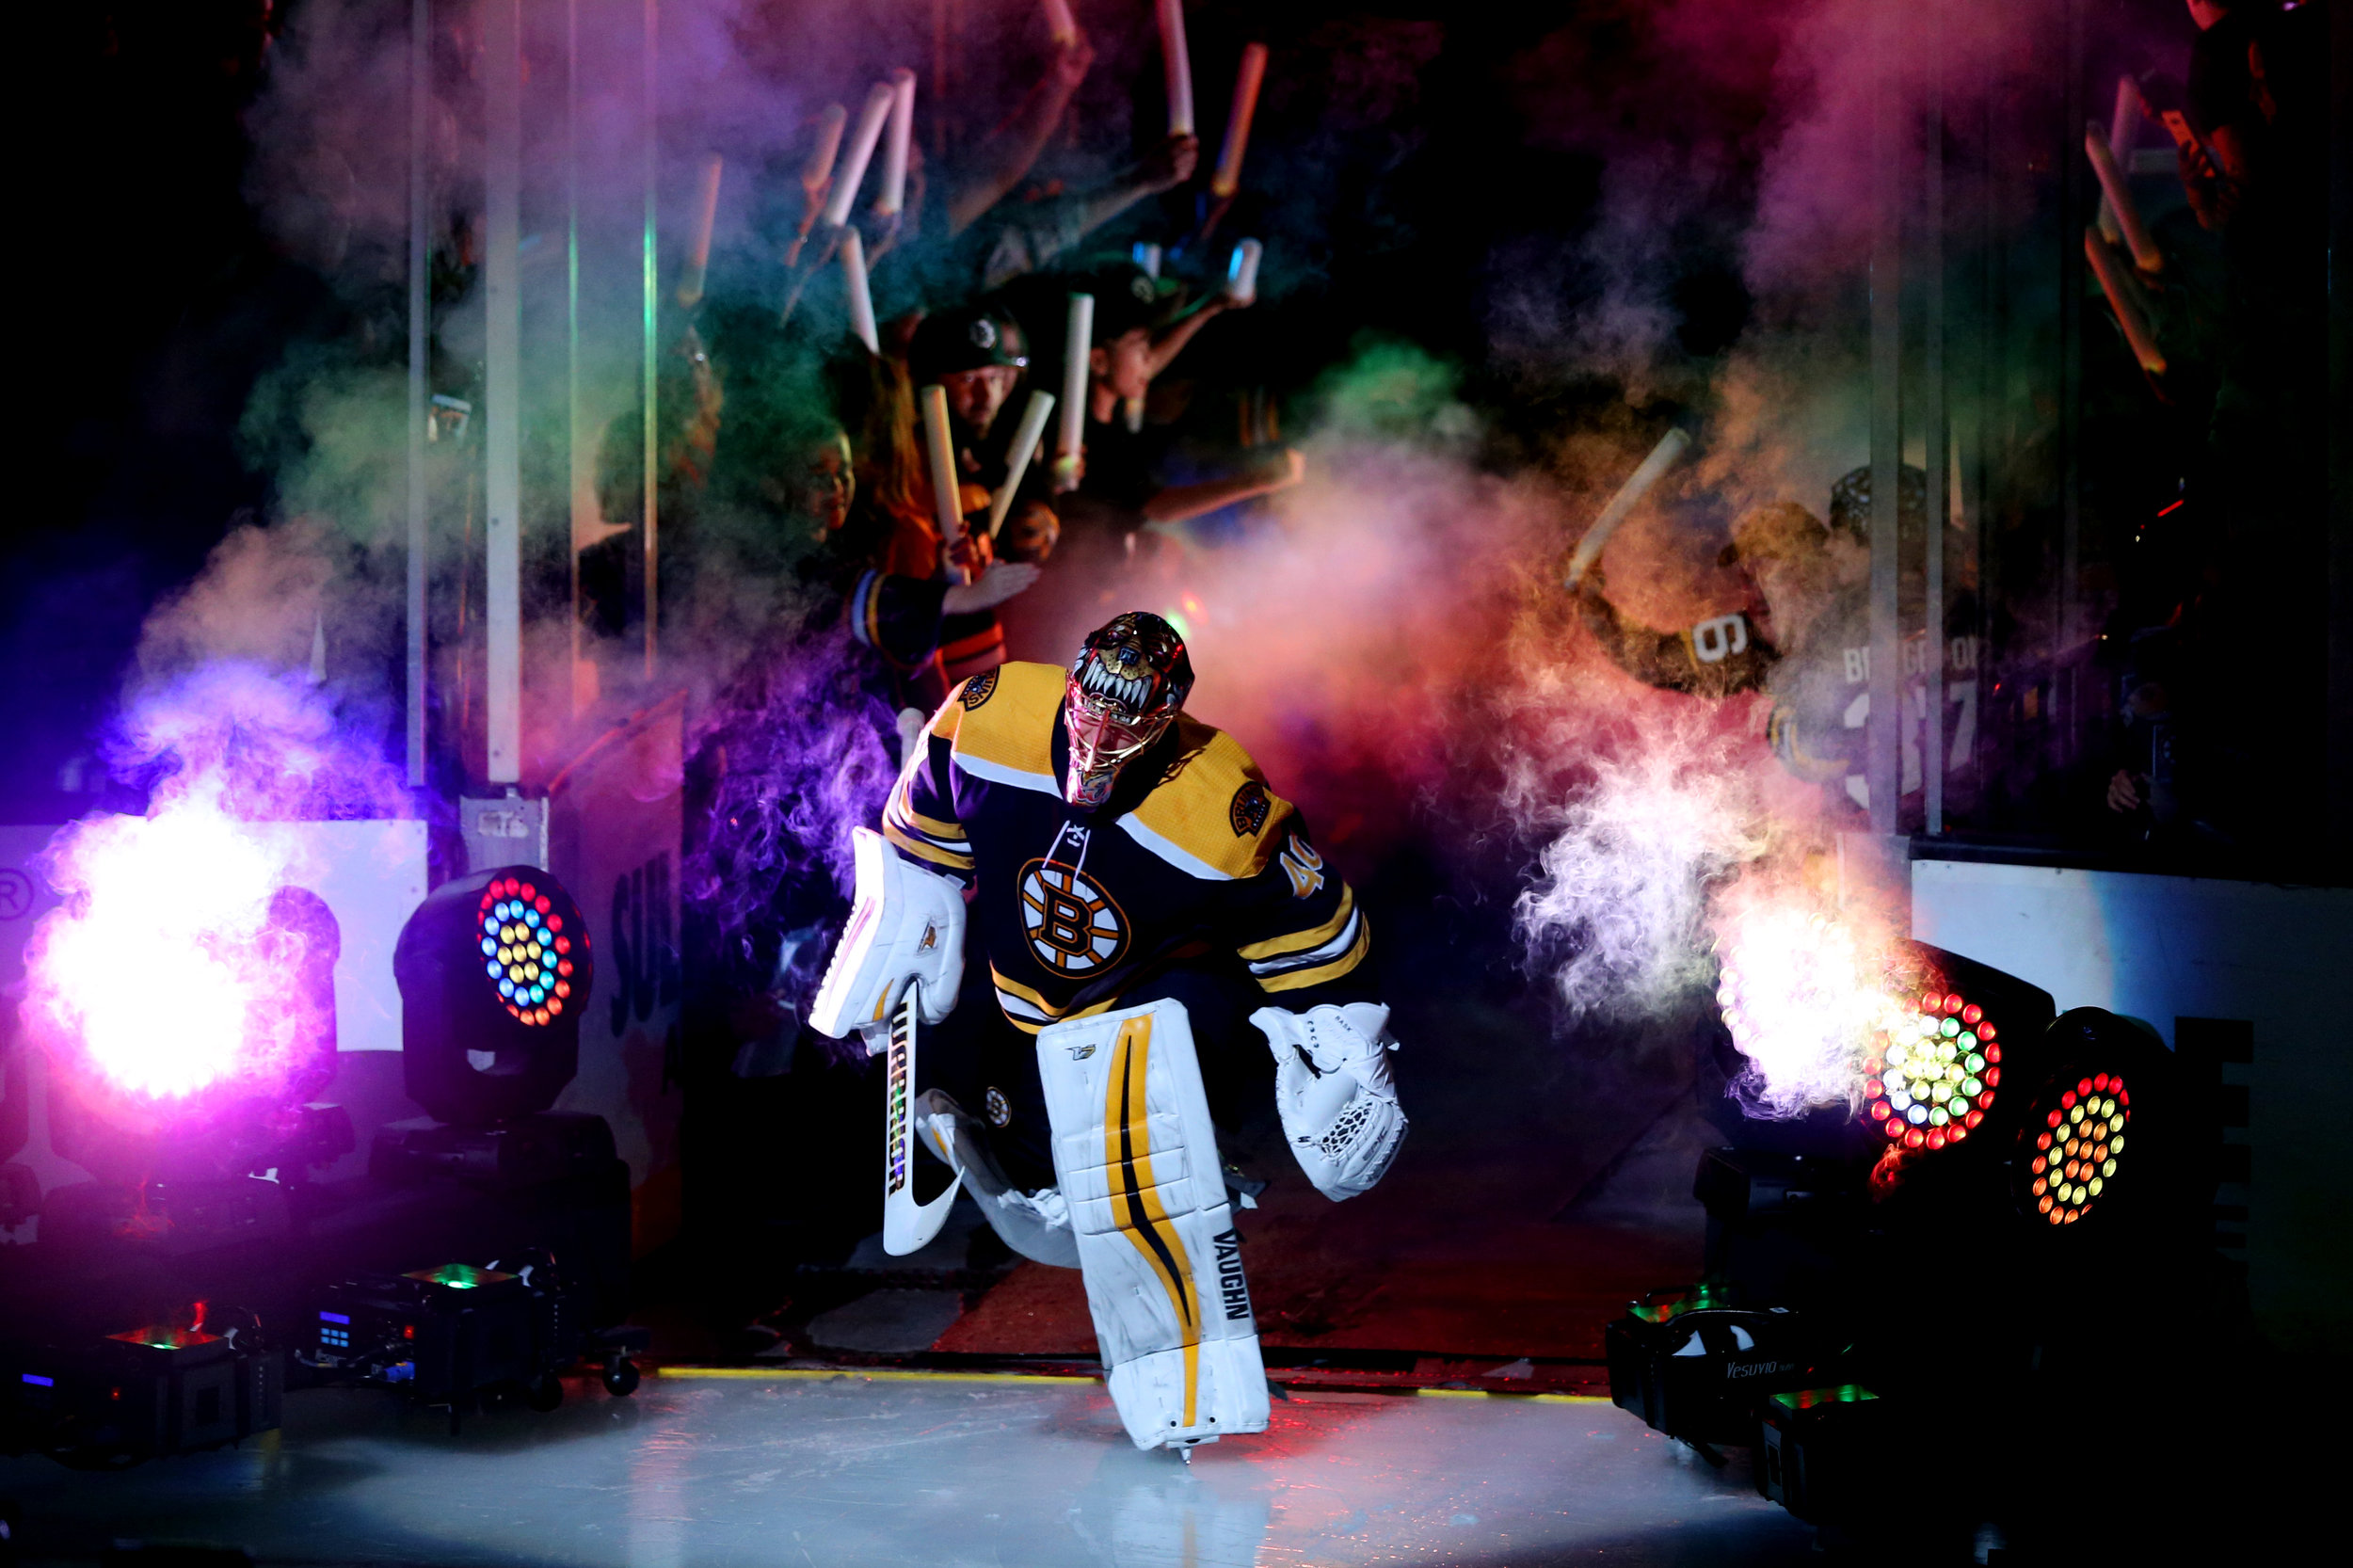 BOSTON BRUINS - Why Port? Because why use anybody else?! Port is the #1 trusted partner for the Boston Bruins' lighting needs at TD Garden. Over the years, I have had the pleasure of working closely with Ron and Steve, and quickly learned how exceptionally flexible, accommodating, and endlessly patient they are while meeting our sometimes crazy and bizarre demands. Many times, I've had to call Port to add new light enhancements or program lights with just a few hours' notice. Port has always pulled it off for us, which sometimes meant working through the night.I rely heavily on Port's expertise when brainstorming new concepts and ideas as they are always looking to help us enhance the atmosphere for our fans and provide an excellent experience. I wholeheartedly recommend Port to anyone wanting help bringing their entertainment lighting production services ideas to fruition.Renée Riva, Creative Marketing & Game Presentations Manager